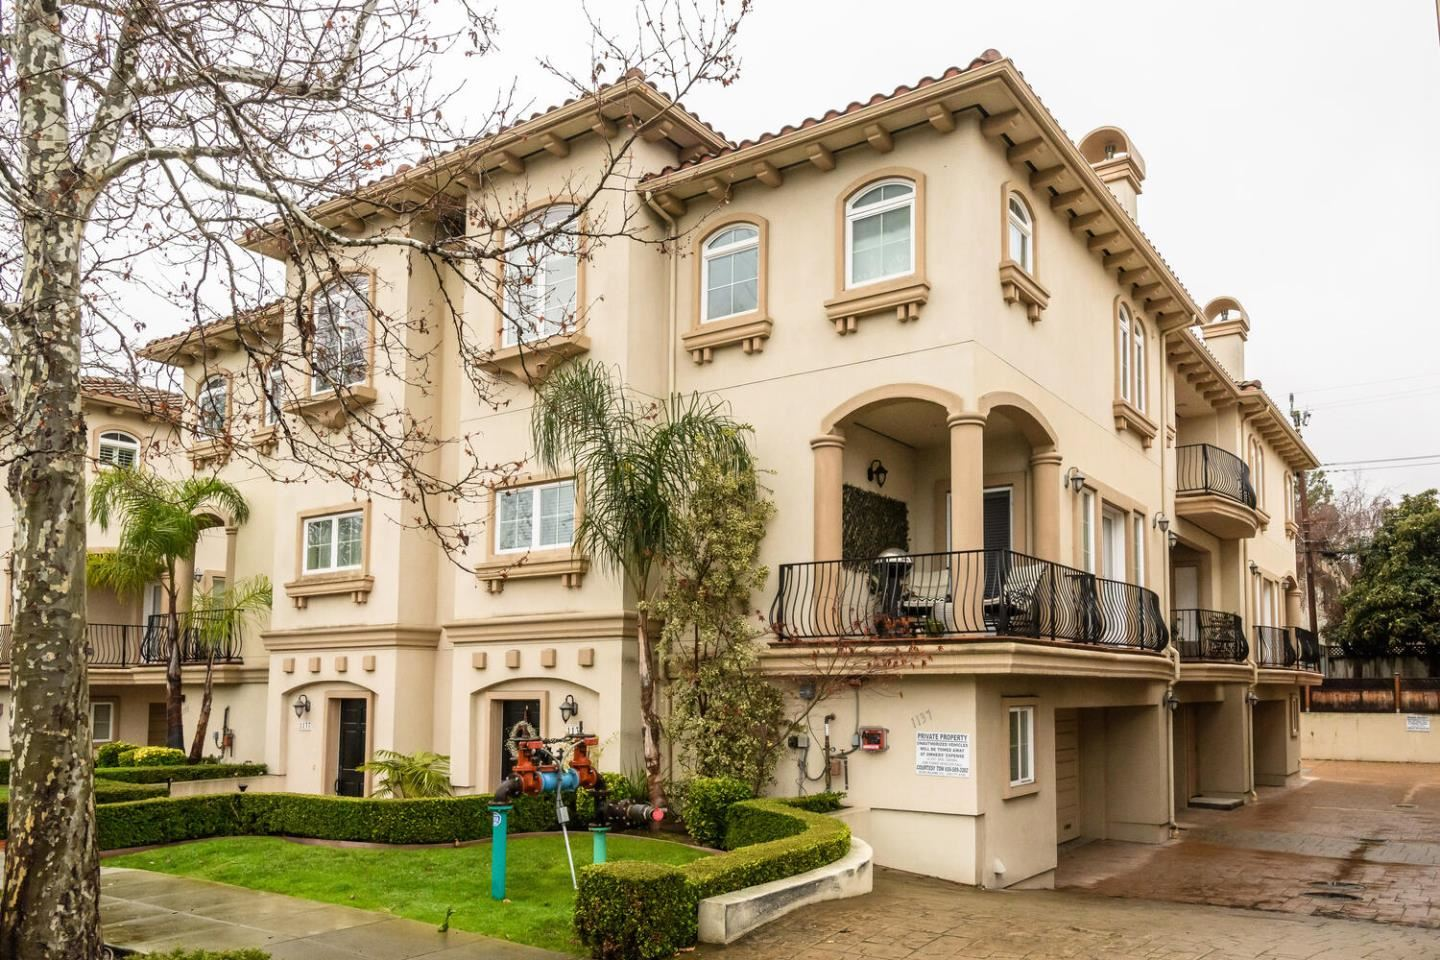 Photo for 1137 Paloma AVE D #D, BURLINGAME, CA 94010 (MLS # ML81829594)